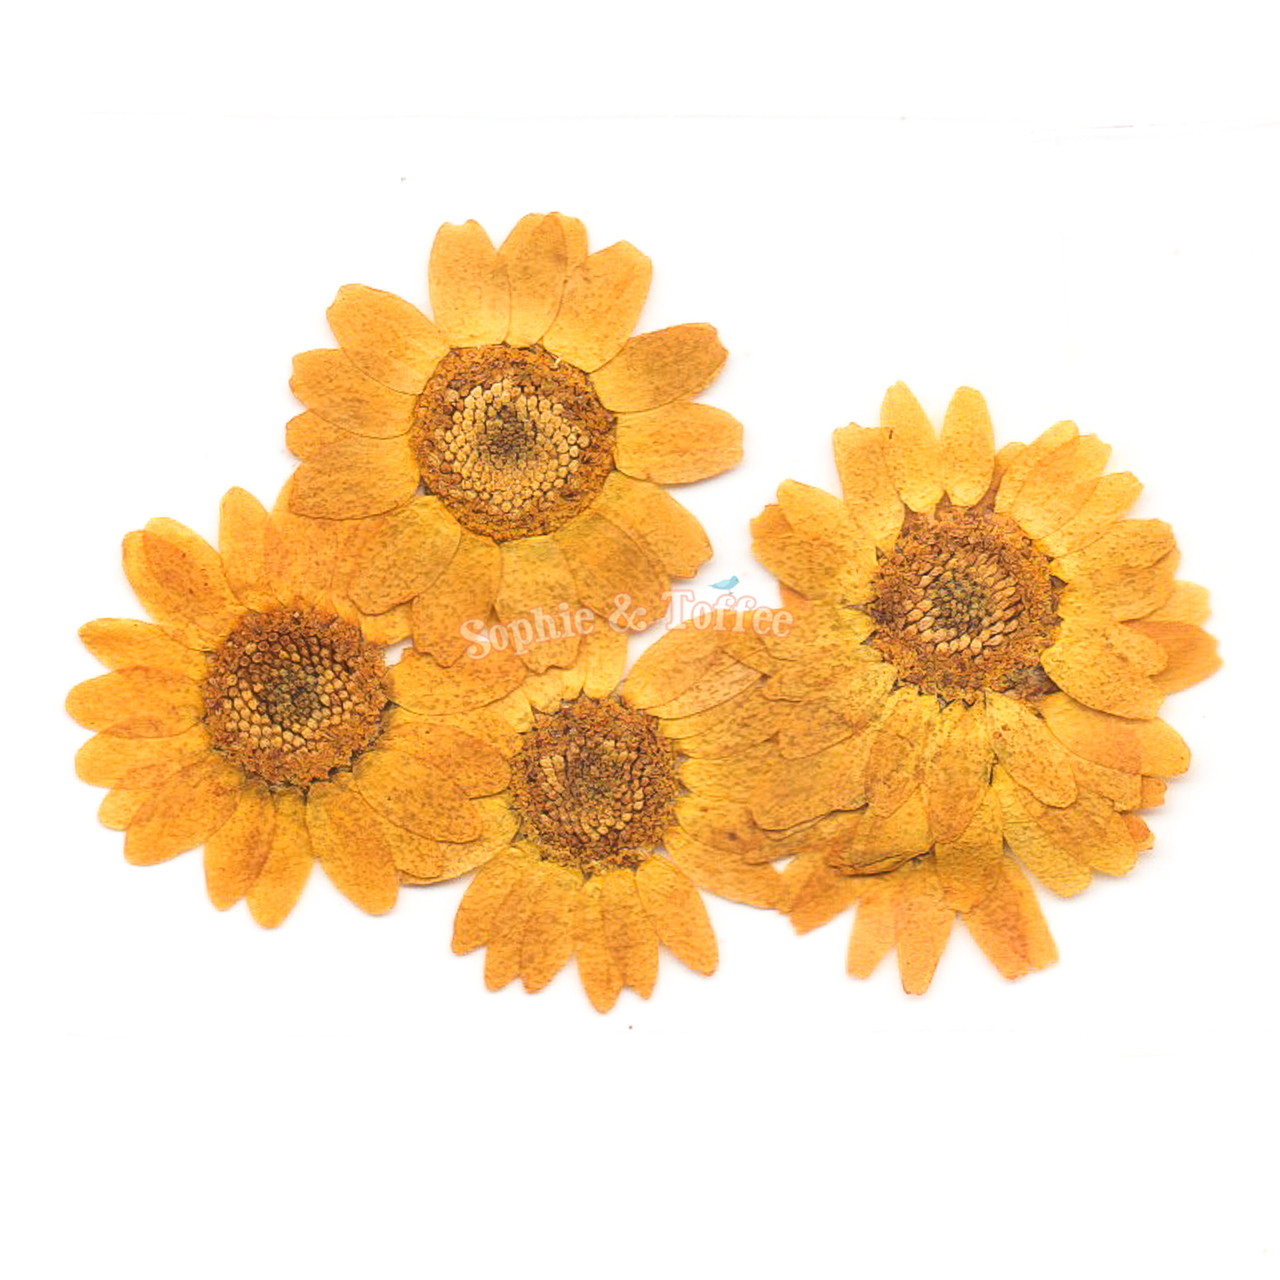 Yellow Daisy Flower Pressed Dried Real Flowers Pressed Flower